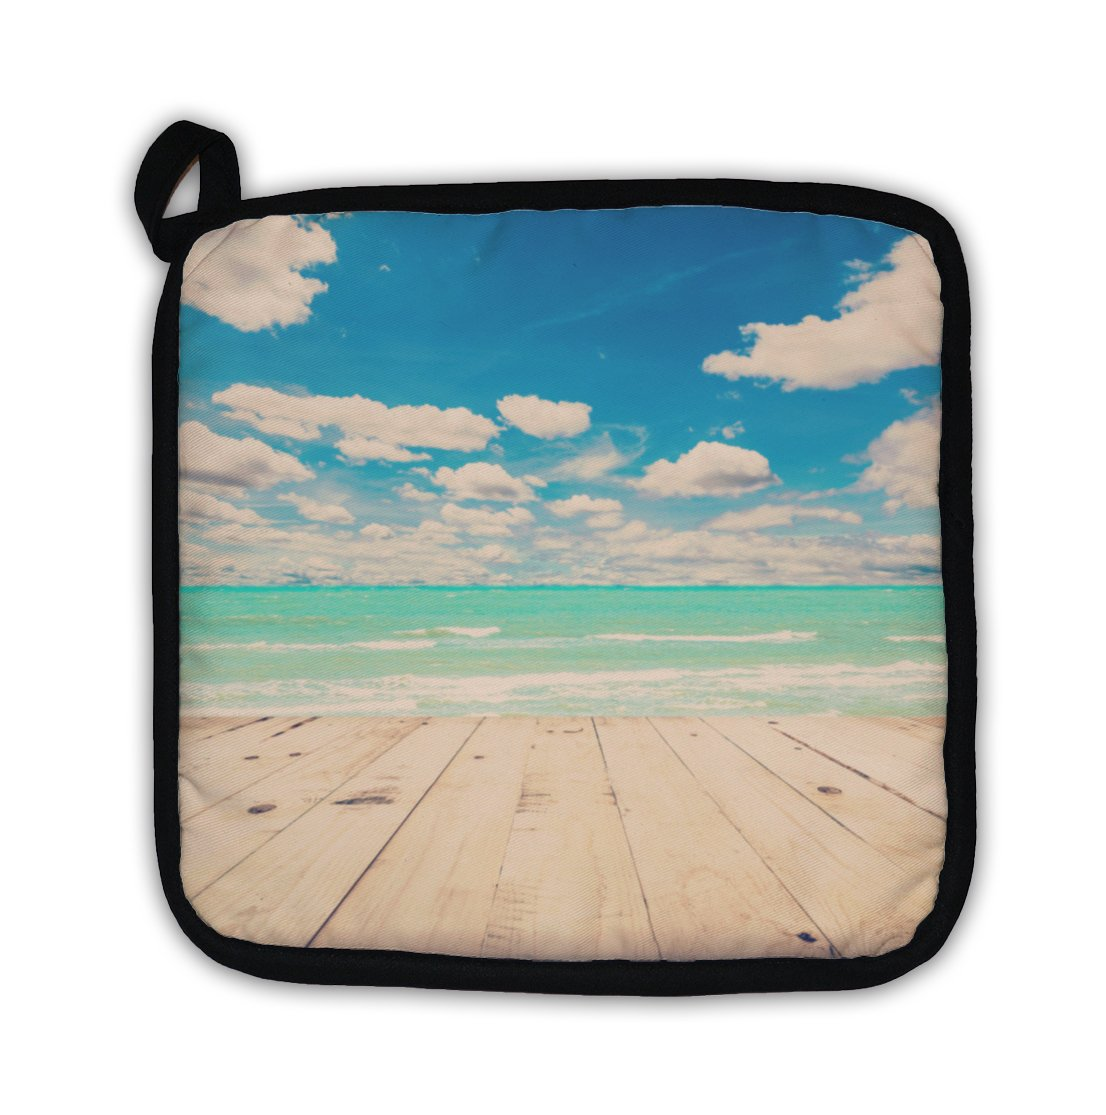 Gear New ''Beach Sea & Blue Sky Clouds with Wood Table Vintage Tone'' Pot Holder